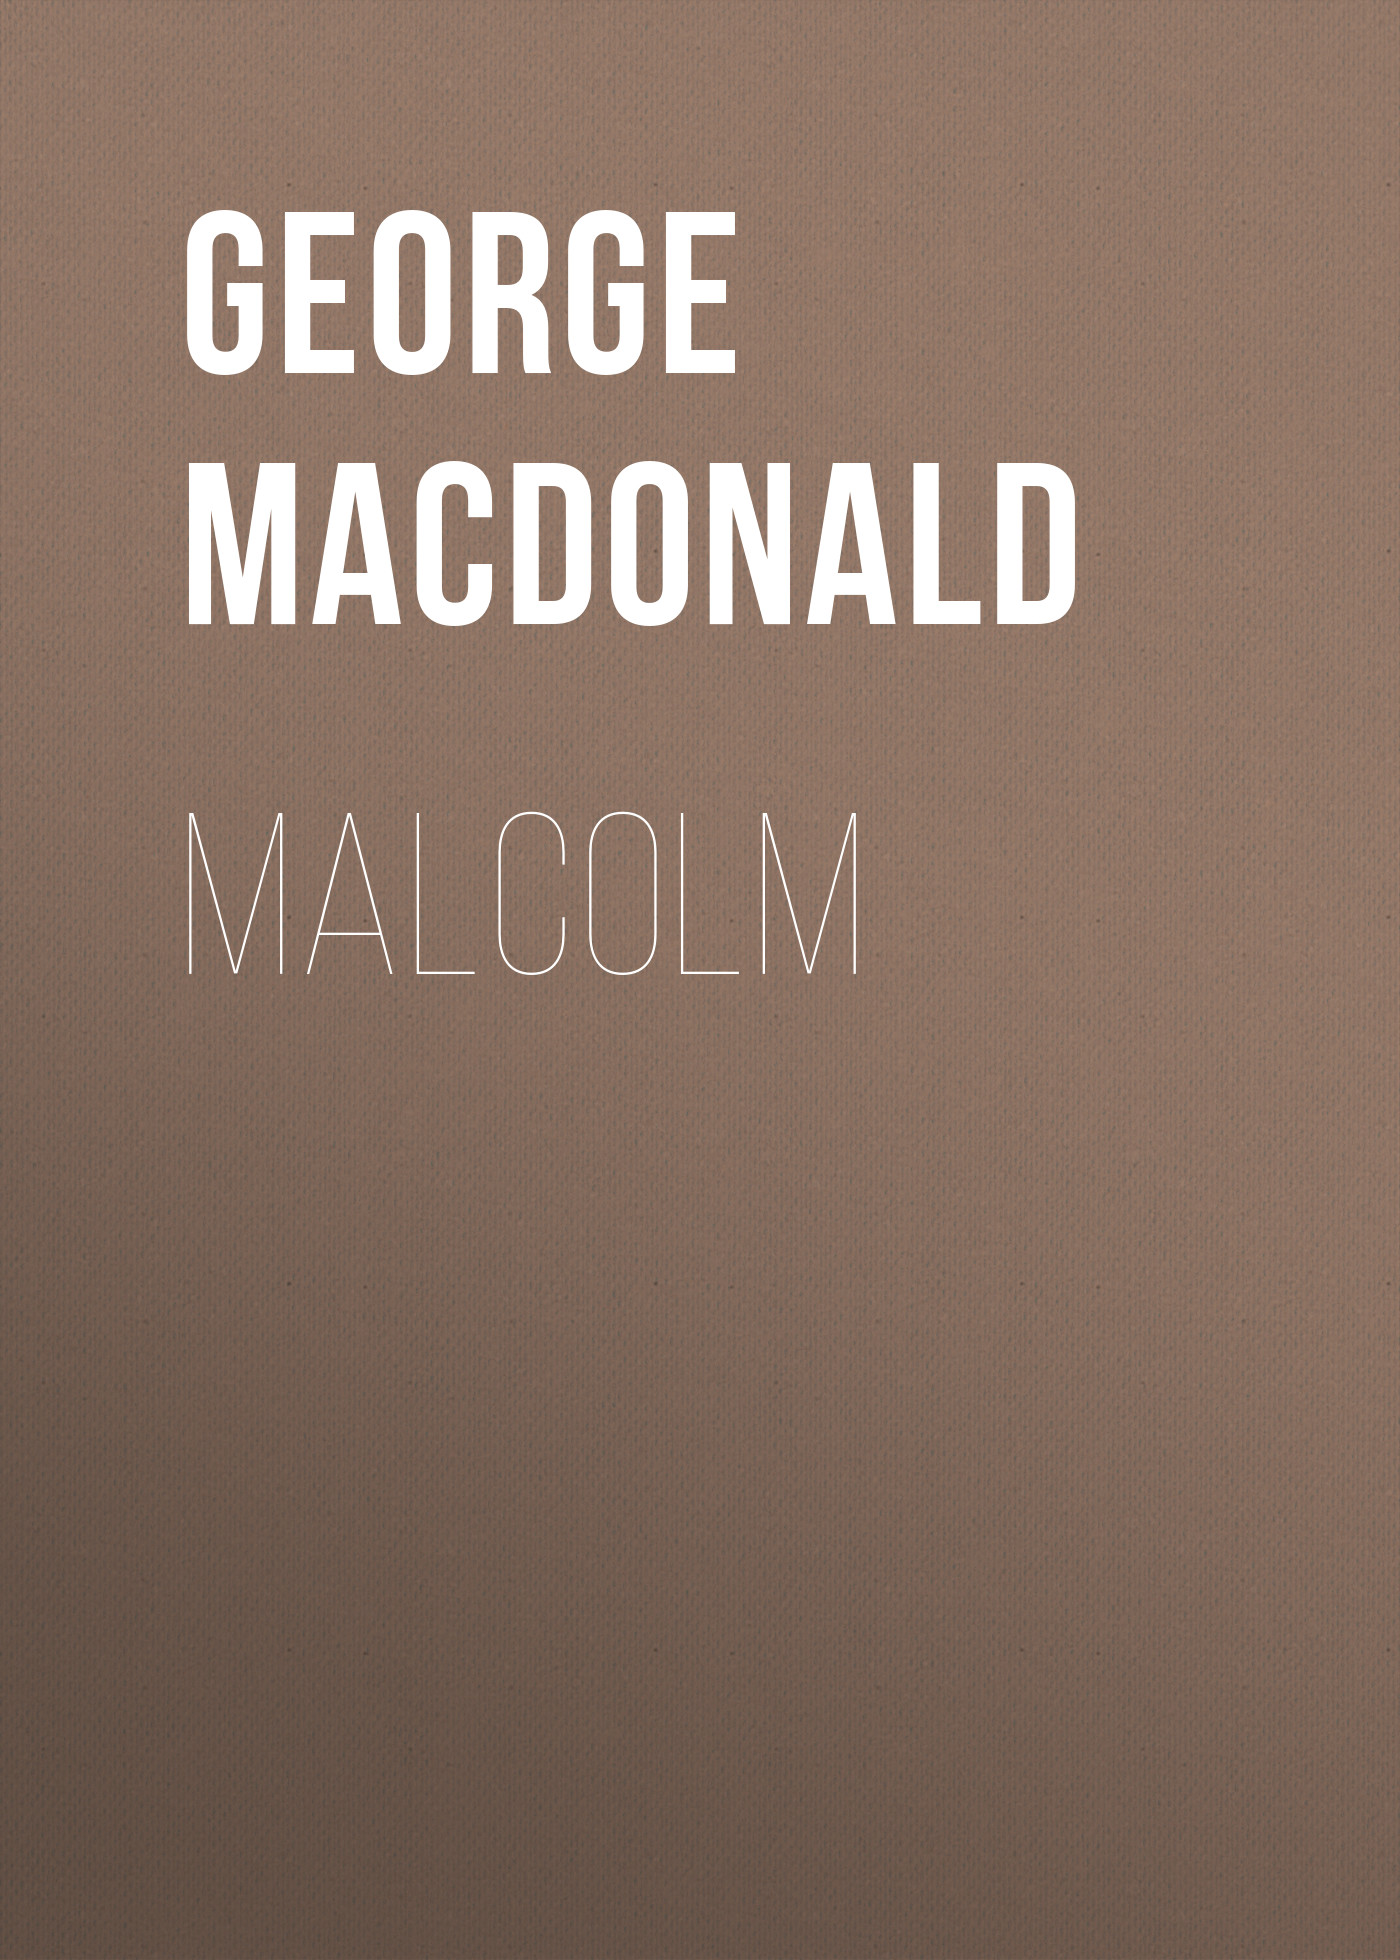 George MacDonald Malcolm george macdonald david elginbrod